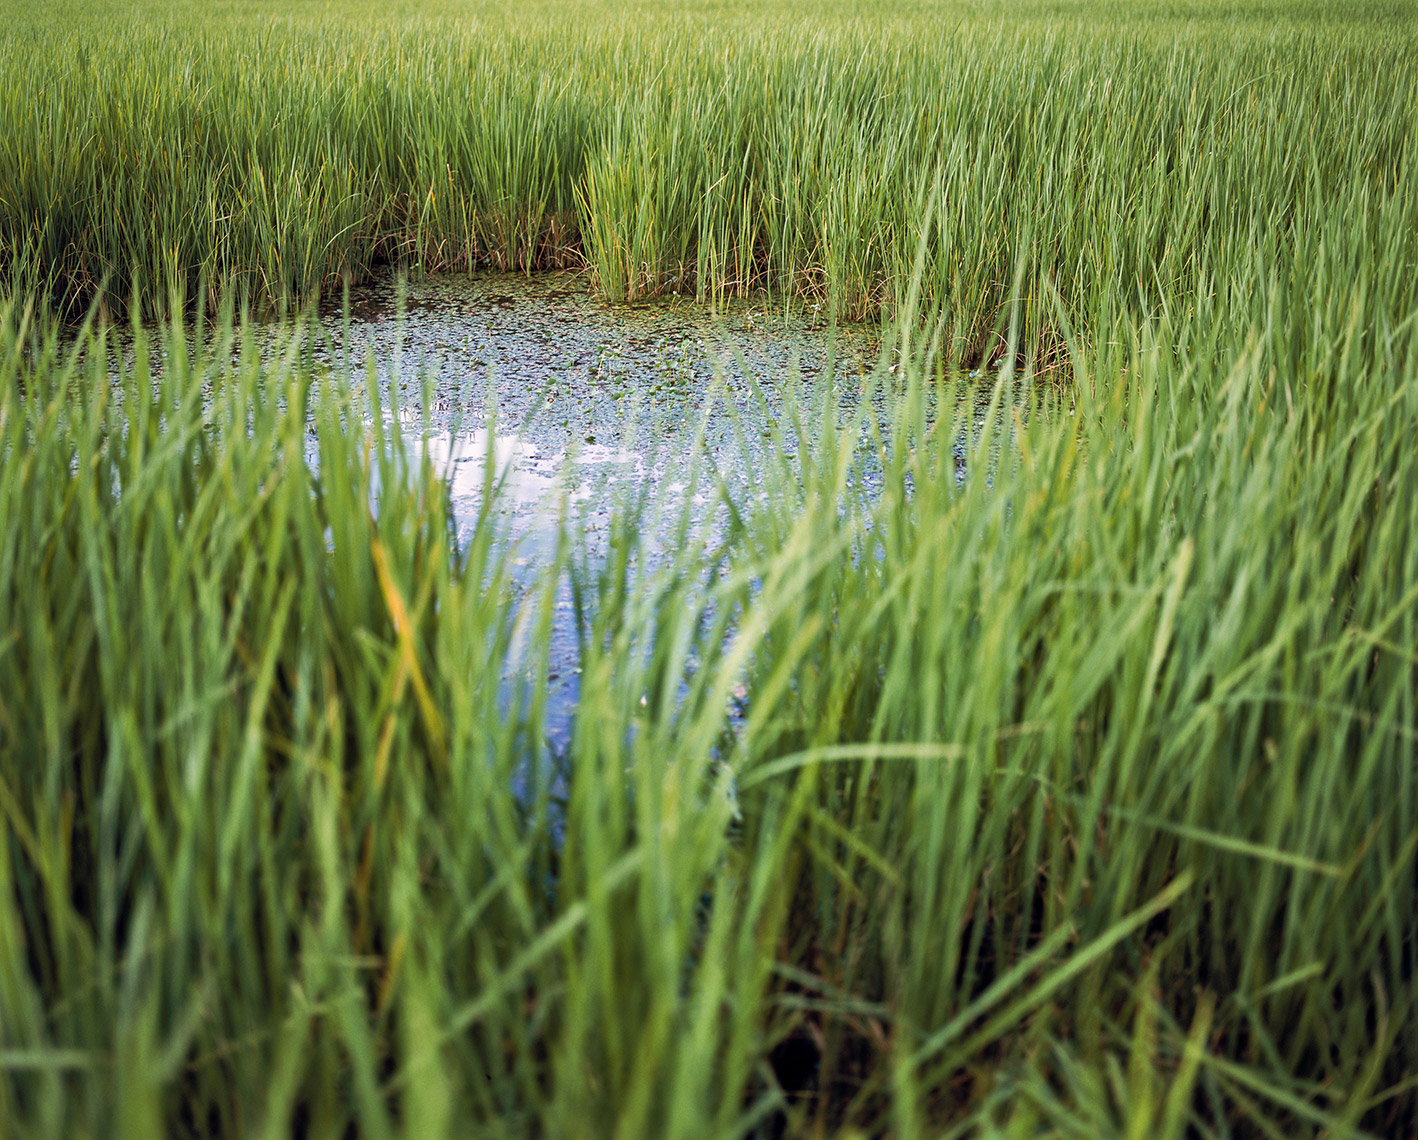 Close up photo of pond surrounded by tall grass